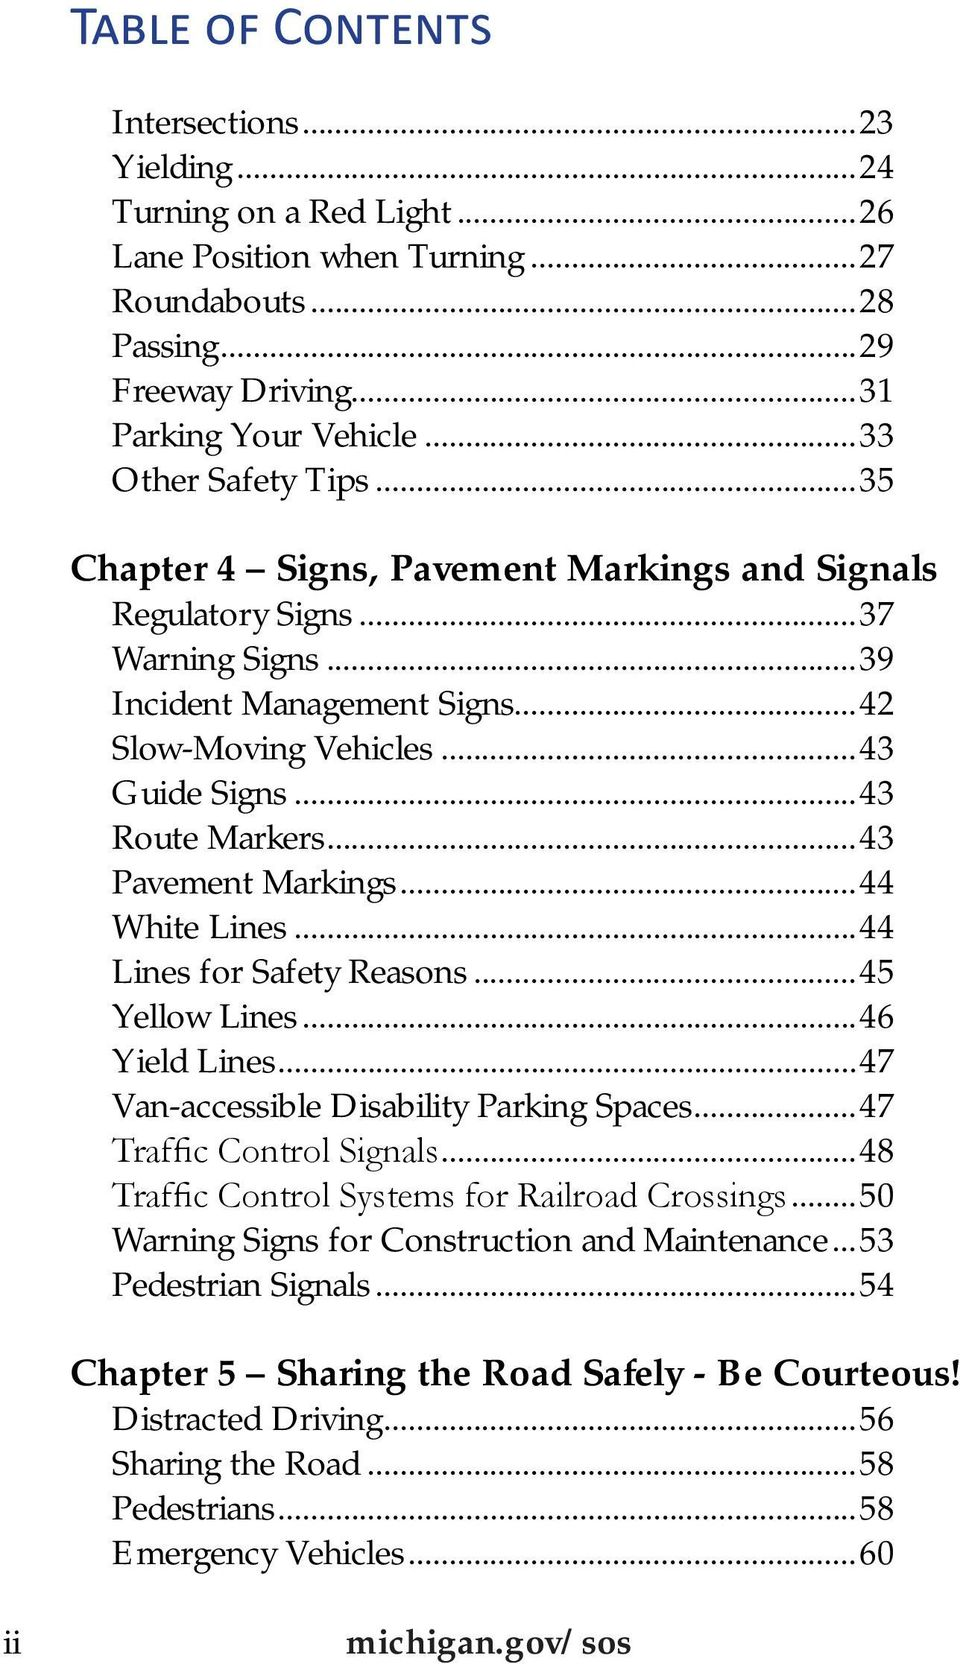 ..43 Route Markers...43 Pavement Markings...44 White Lines...44 Lines for Safety Reasons...45 Yellow Lines...46 Yield Lines...47 Van-accessible Disability Parking Spaces...47 Traffic Control Signals.